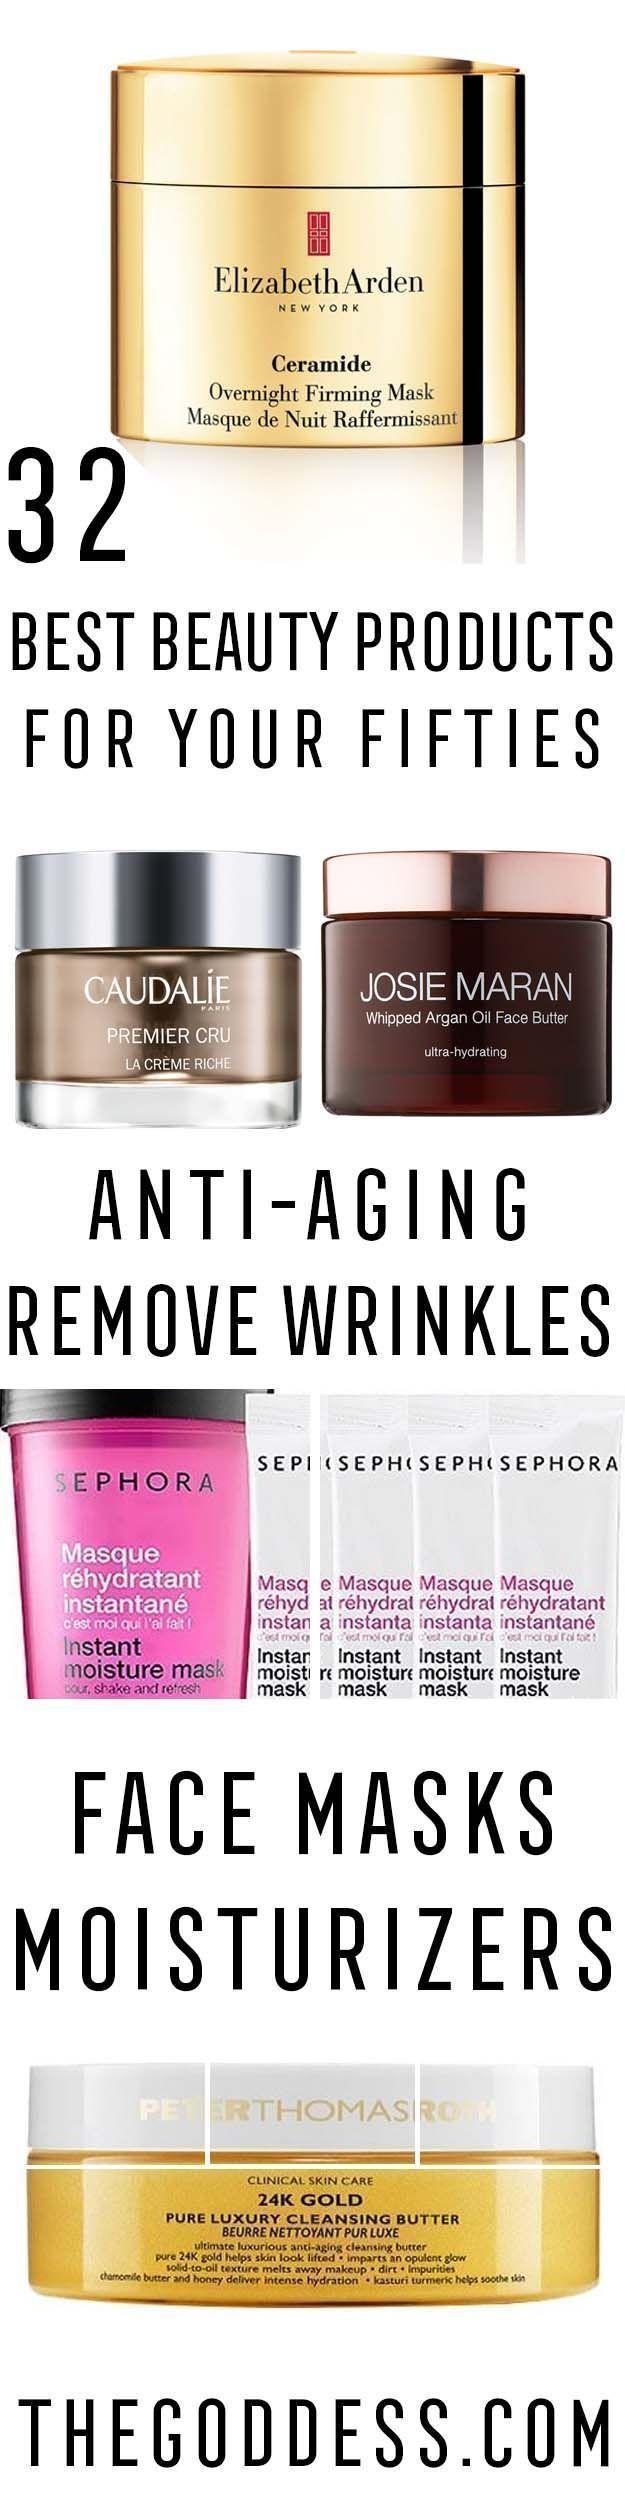 Best Beauty Products For Your 50s - The Best Beauty Products and Tips and Tricks For Your 50s. Great Make Up And Skin Care Routines And Regimens For You To Look Young And Vibrant. Looking For The Best Skin-Care Routine For Your 30s? We Cover Routines That You Need To Follow For Anti-Aging As Well As Eye Products, Skin Products, and Face Cream to Stay Hydrated. Check Out These Tutorials To Know What To Do In Your 30s For Skin Care and Beauty. https://thegoddess/beauty-products-for-your-50s